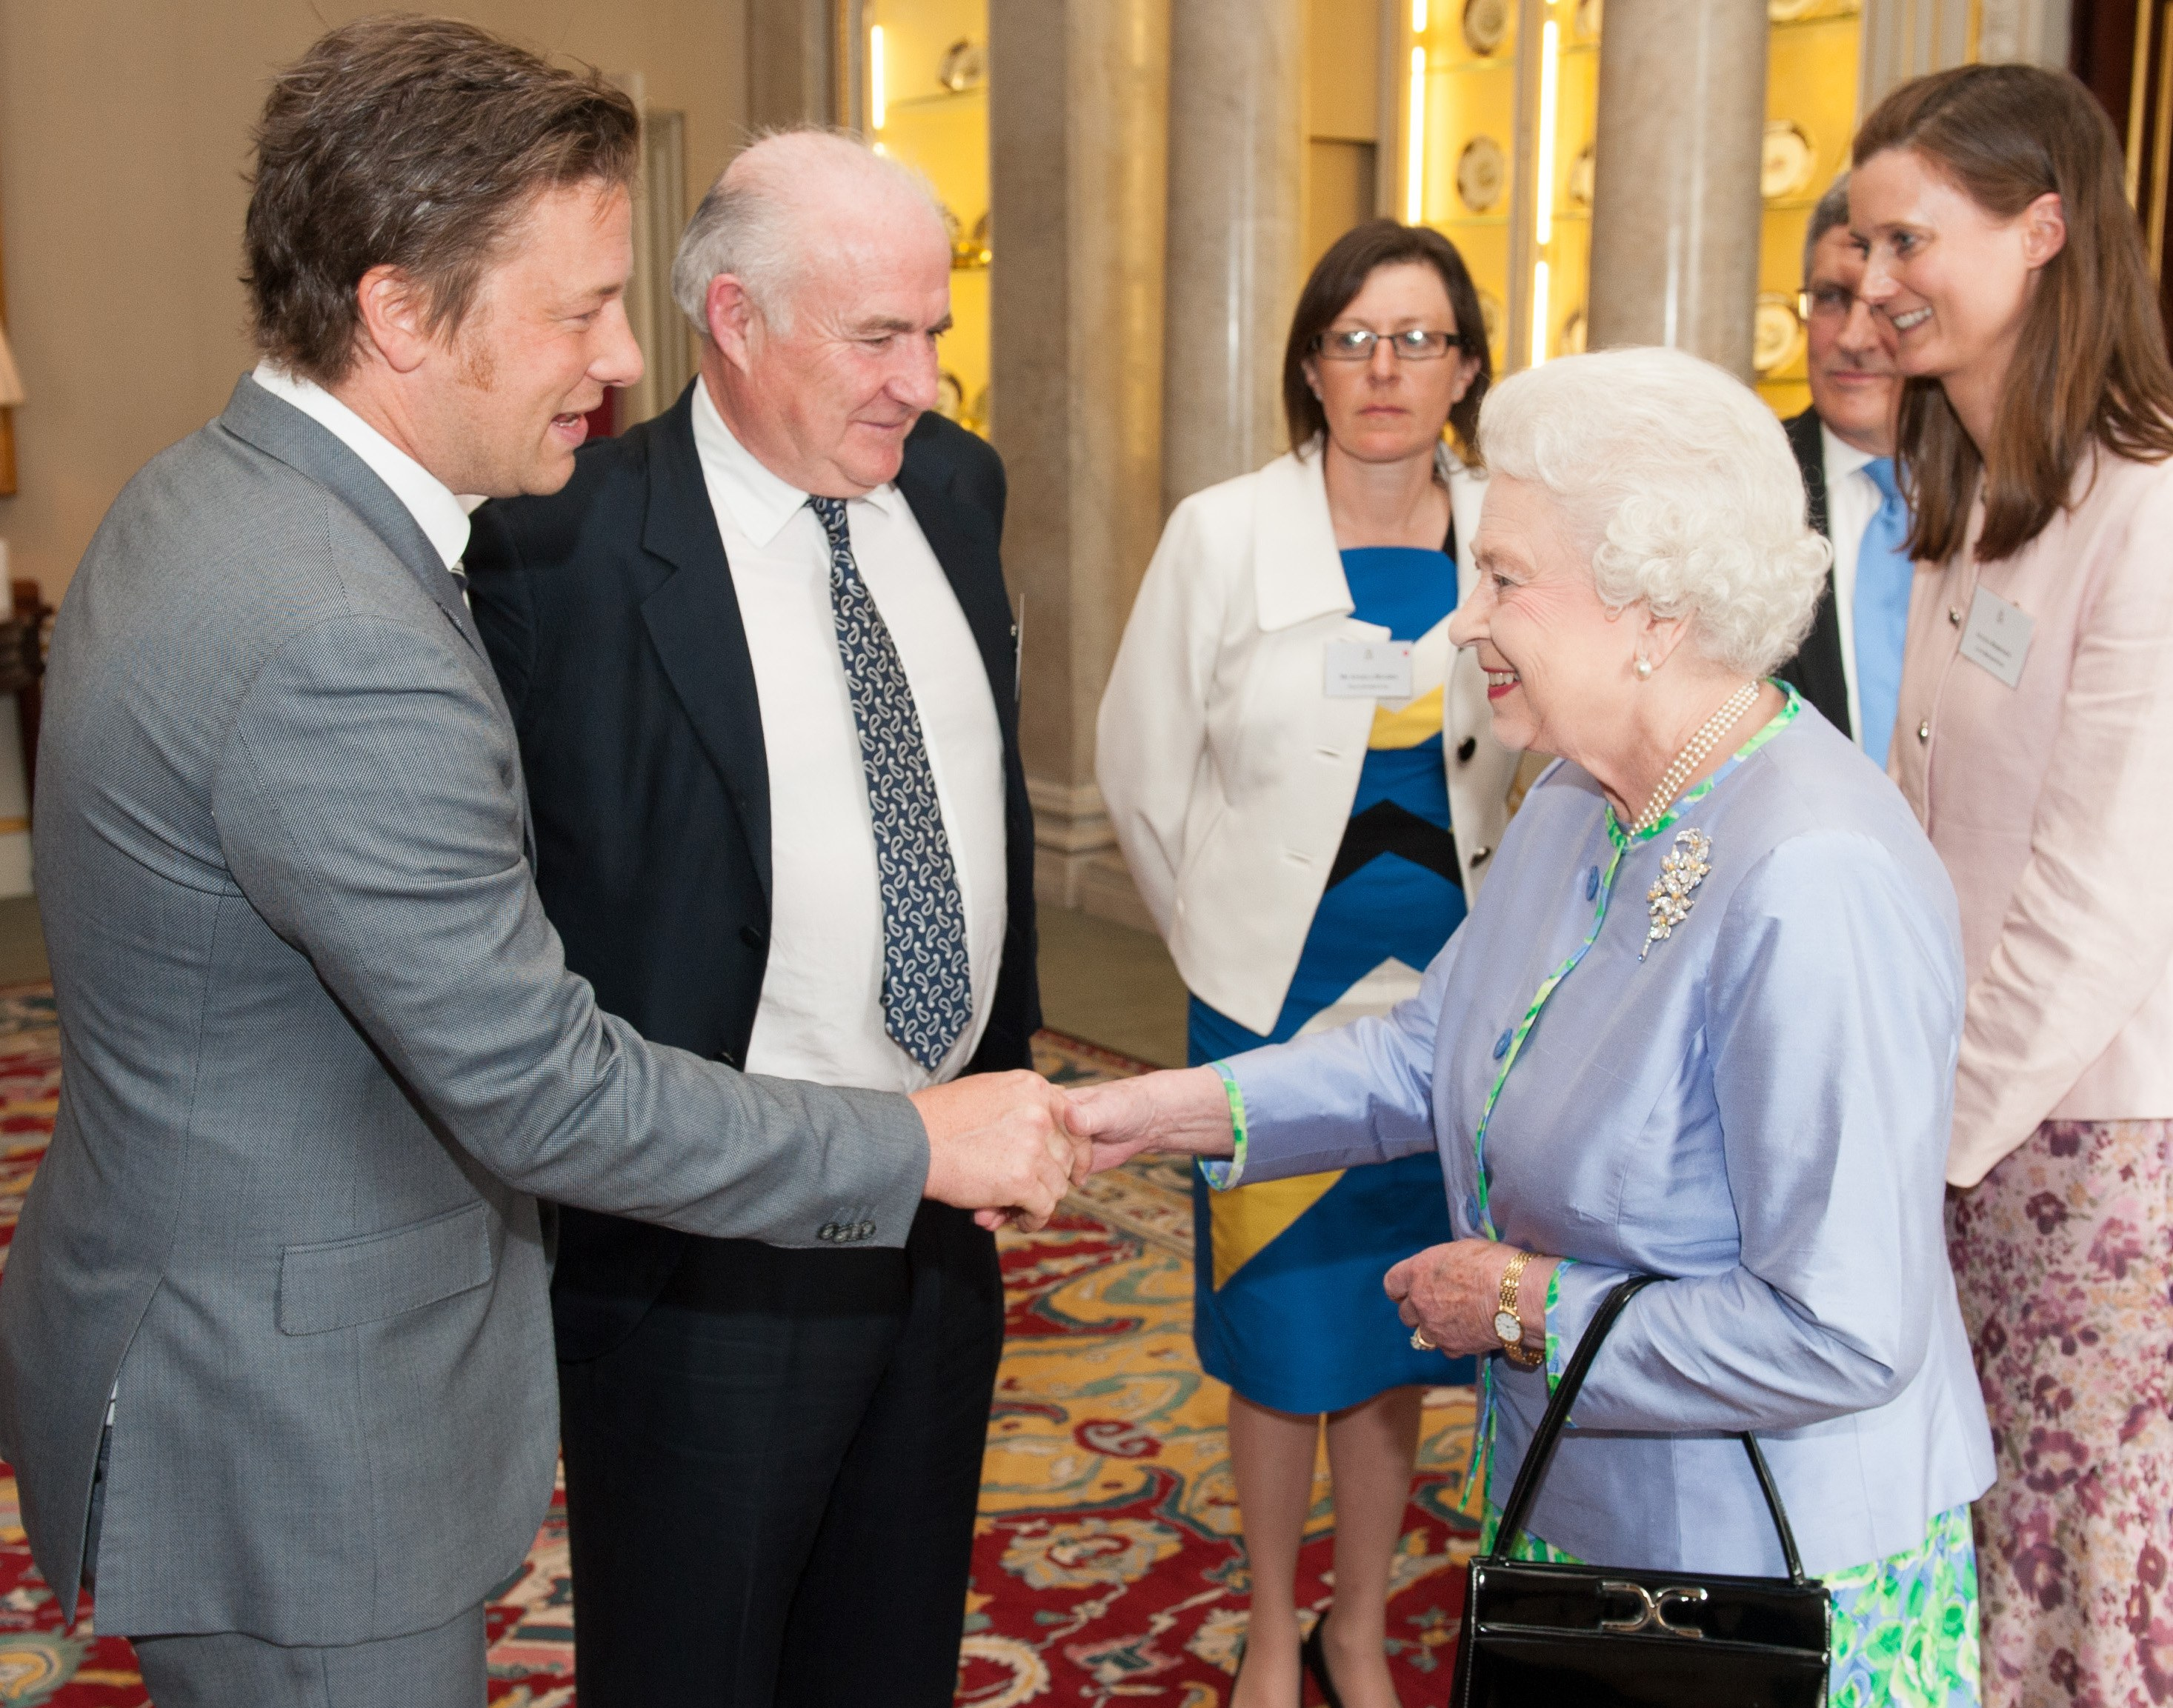 Chef Jamie Oliver shakes hands with Queen Elizabeth